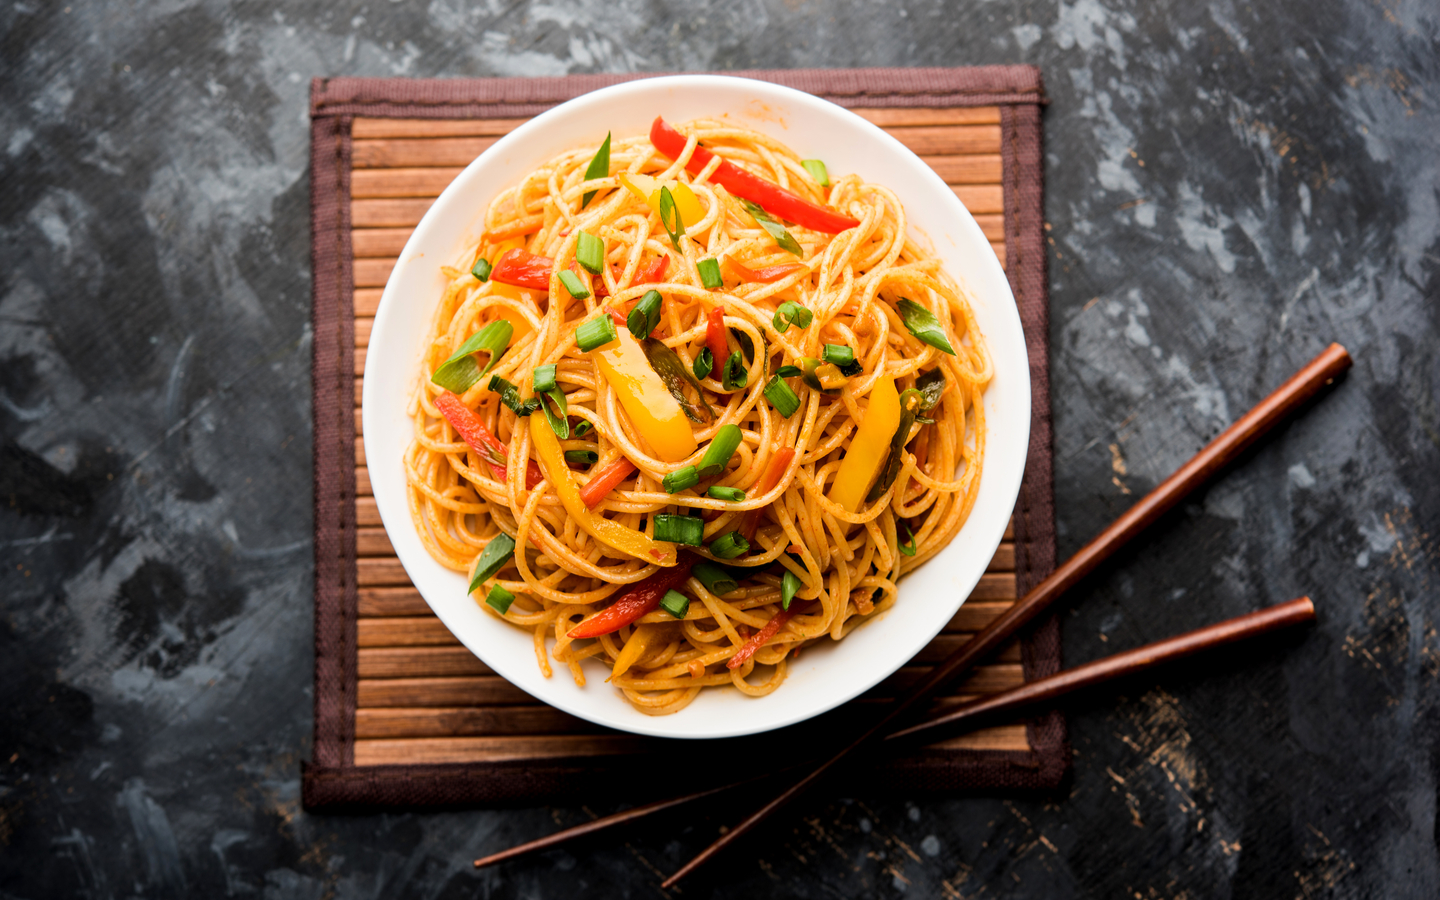 Sumptuous Hakka Noodles is a spicy Indo-Chinese fare, made popular by the Memory Lane, Dubai